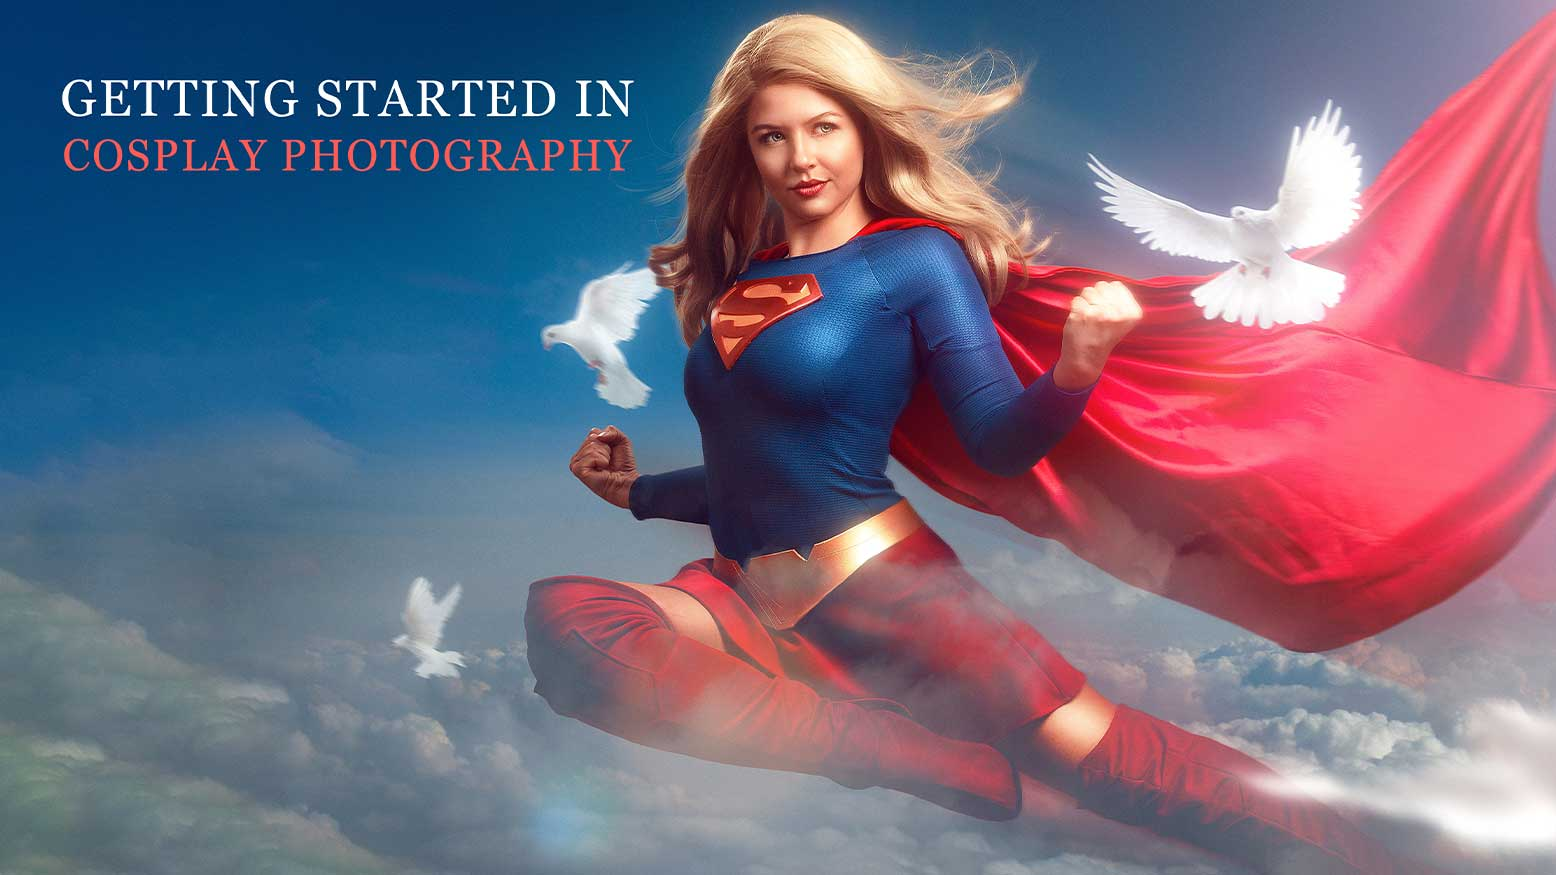 Getting Started in Cosplay Photography